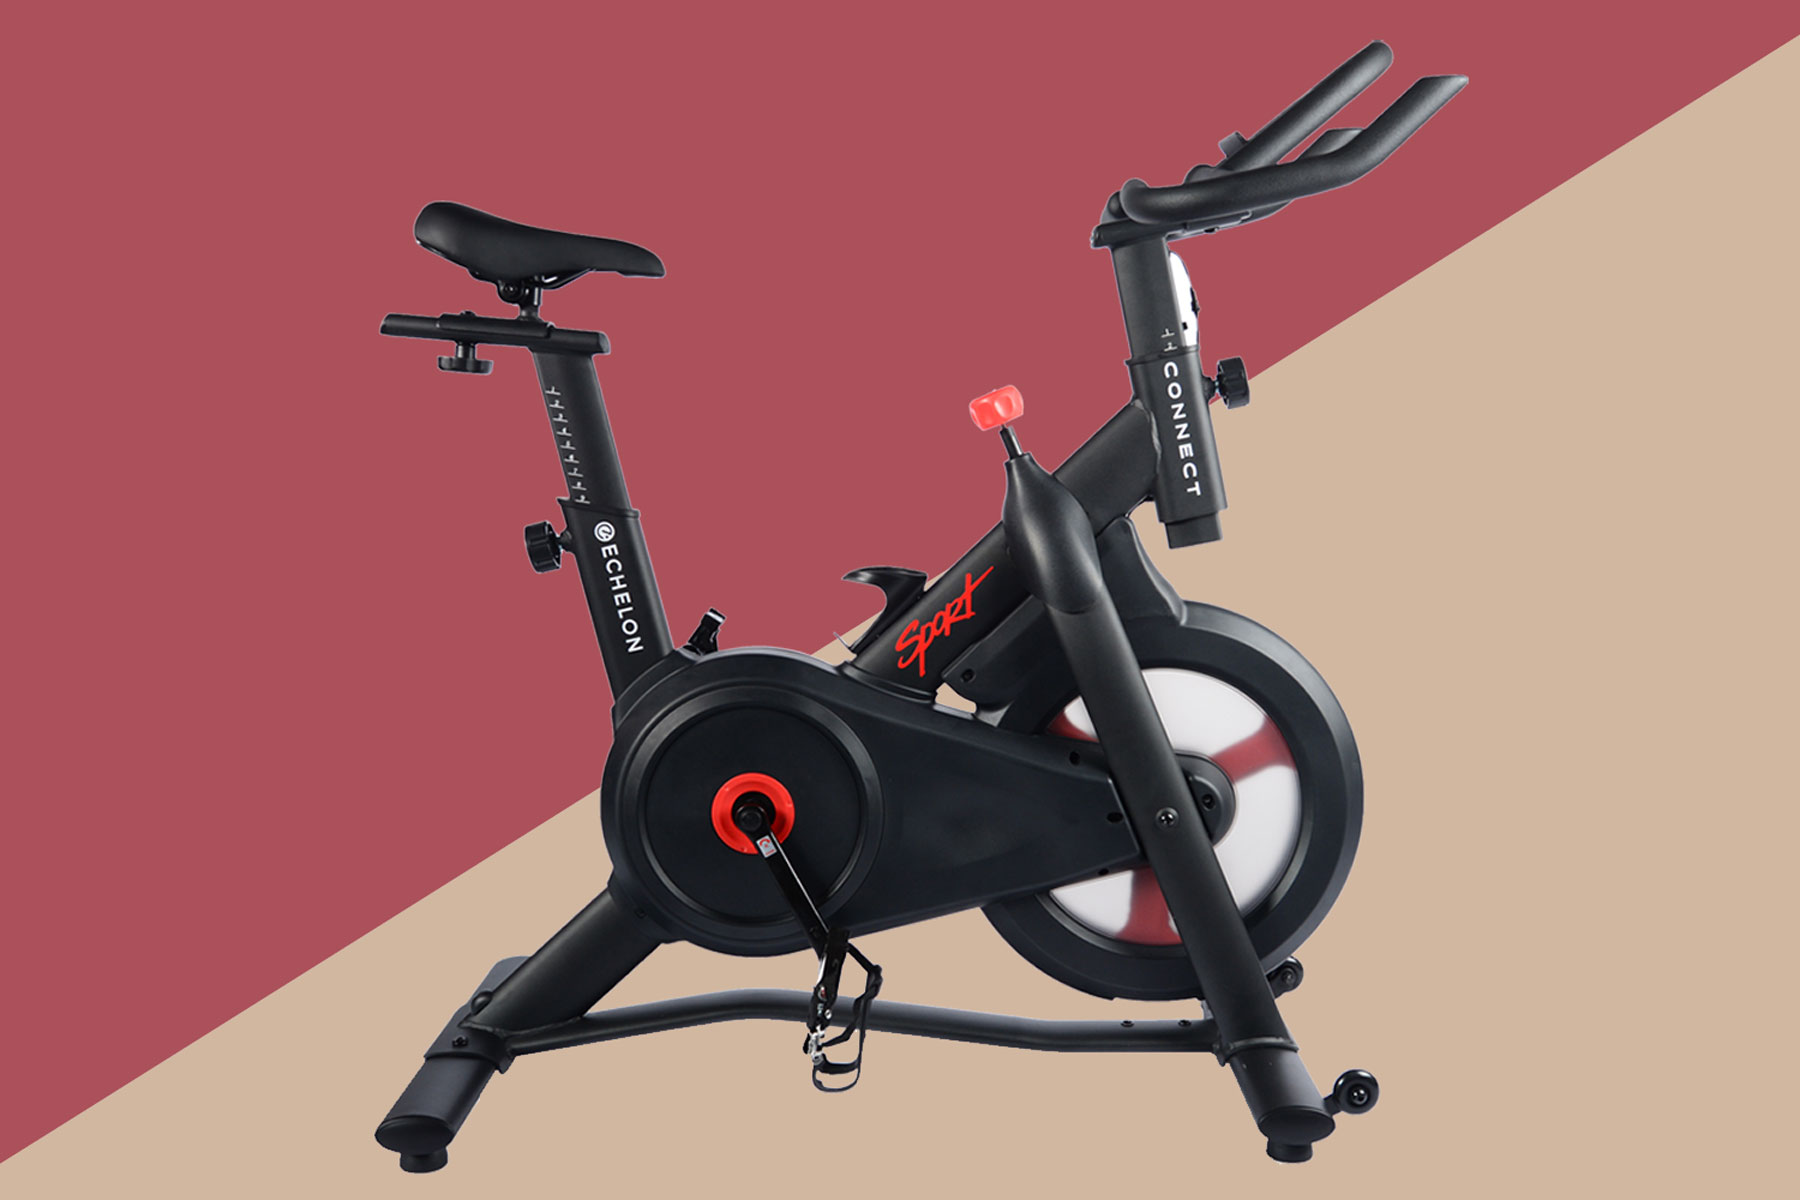 Black and red stationary bike